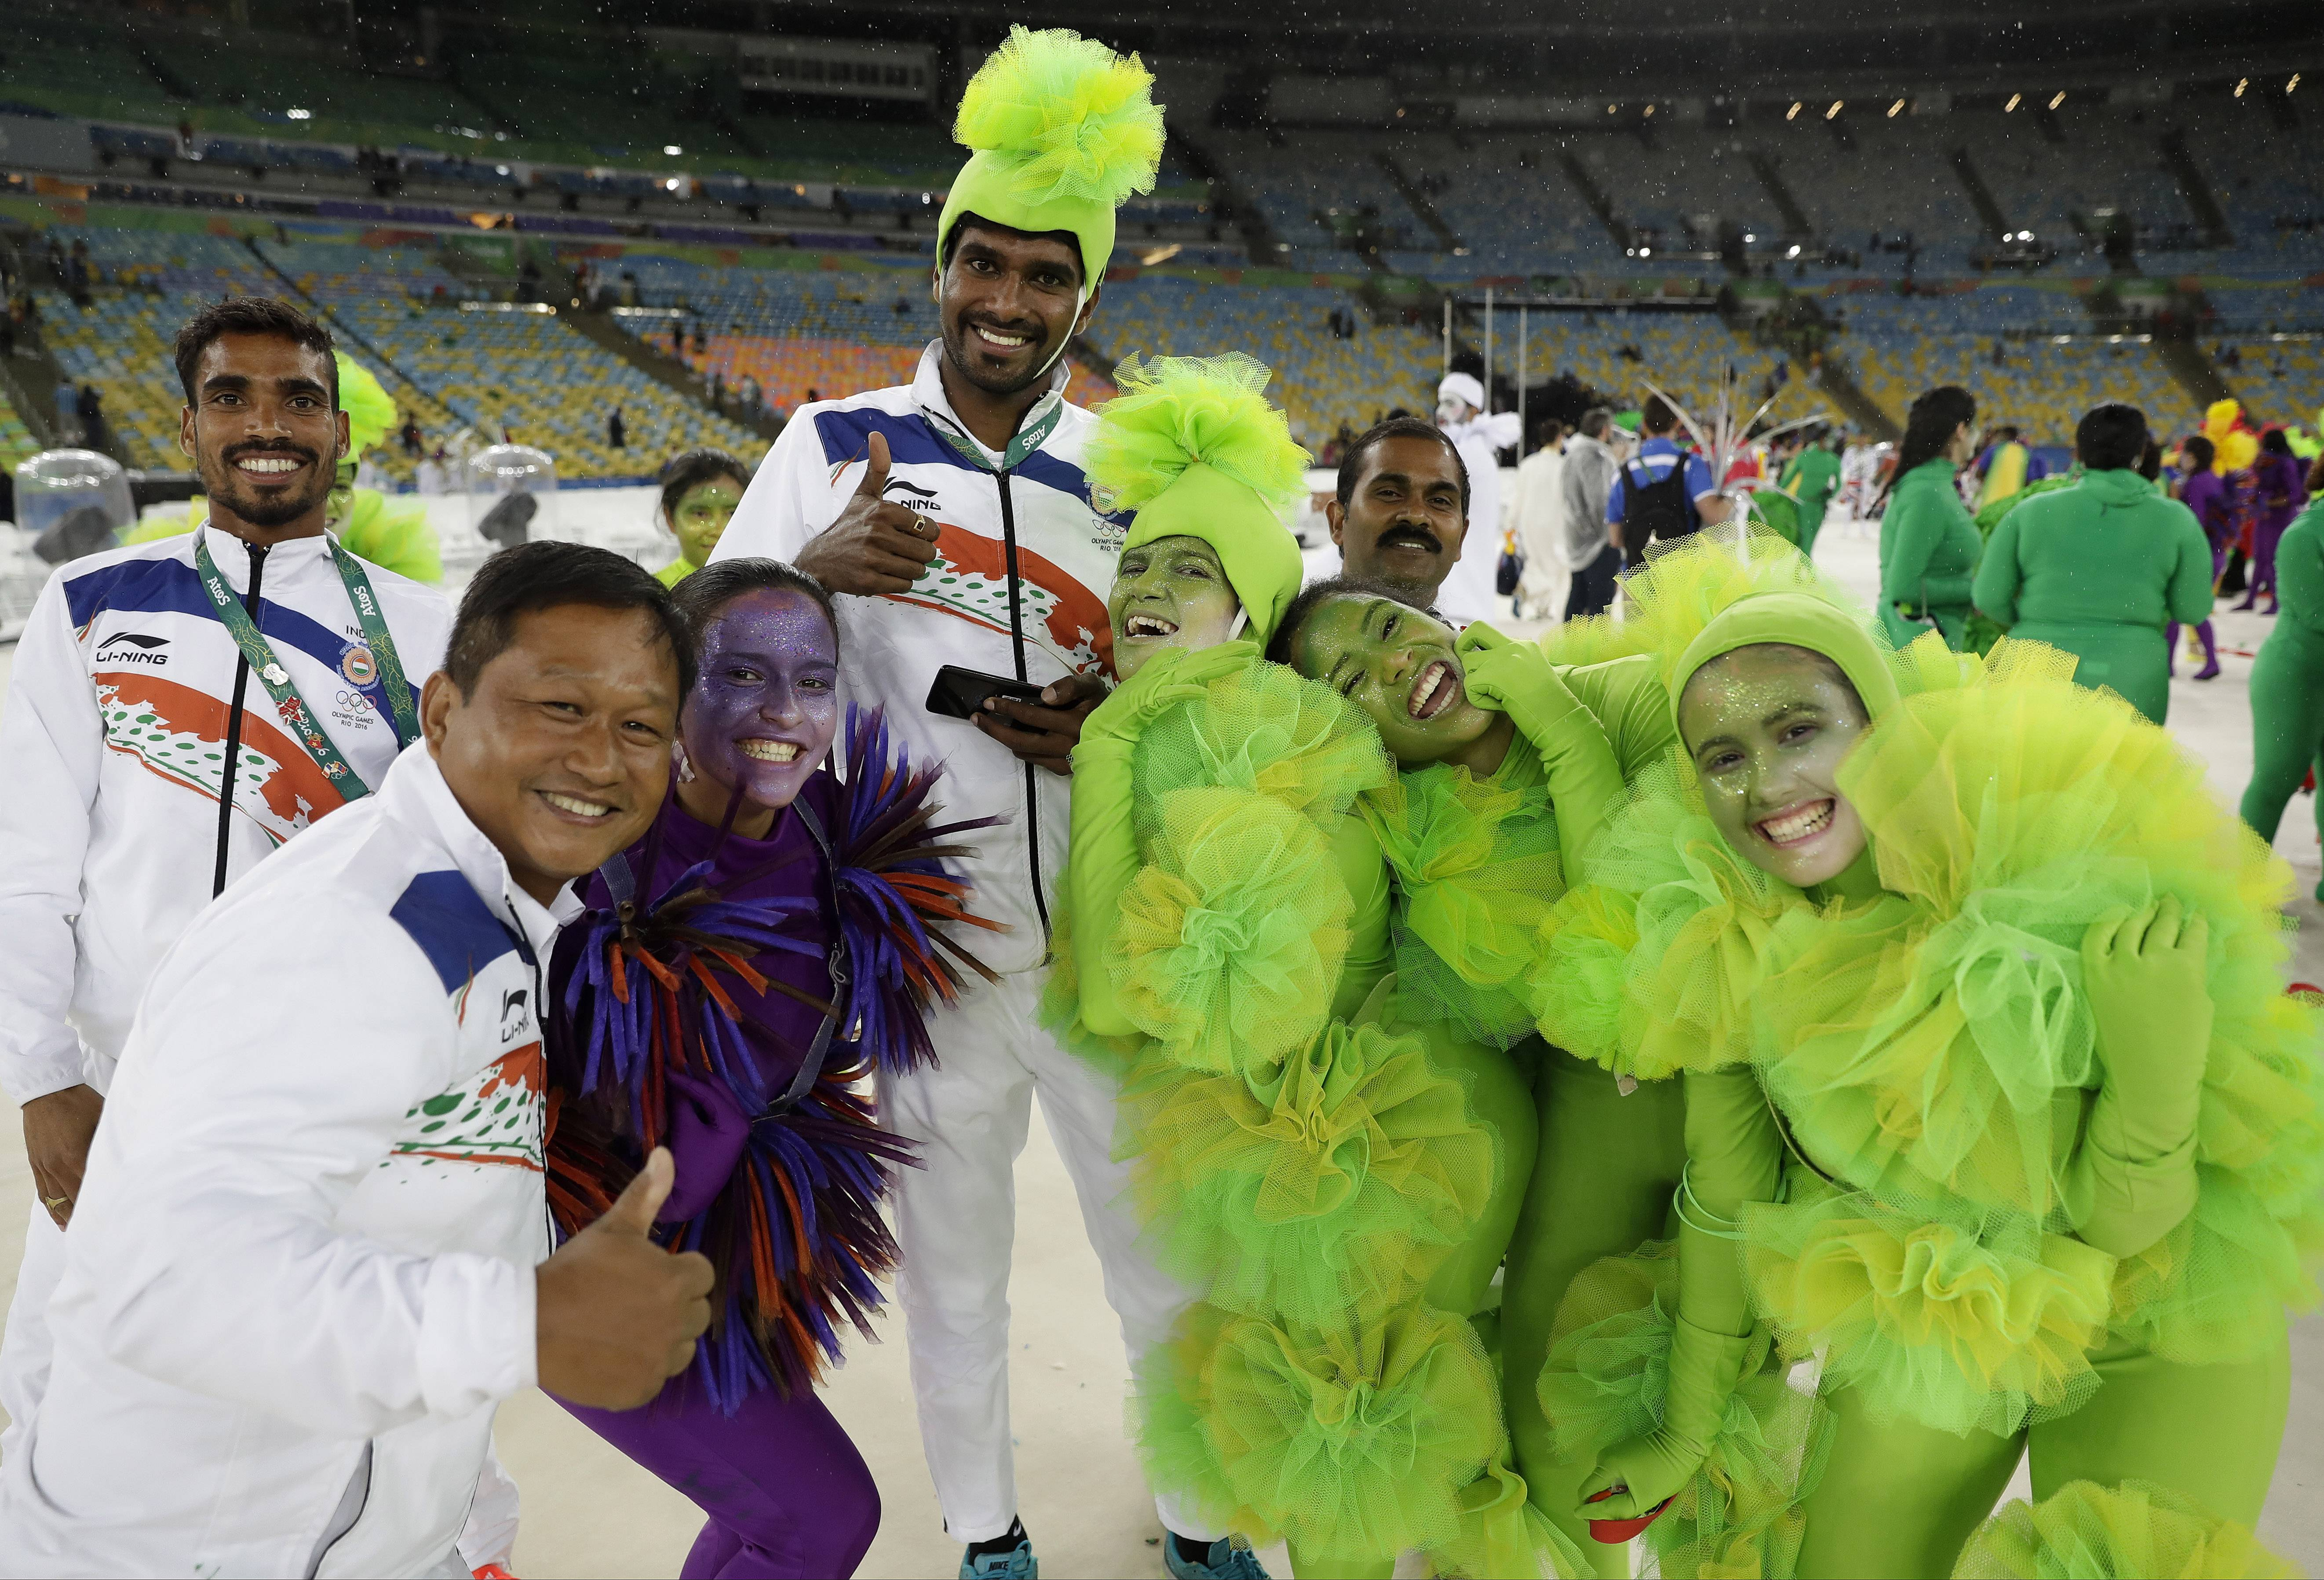 Athletes pose for picture with performers during the closing ceremony in the Maracana stadium at the 2016 Summer Olympics in Rio de Janeiro, Brazil, Sunday, Aug. 21, 2016. (AP Photo/Matt Dunham)